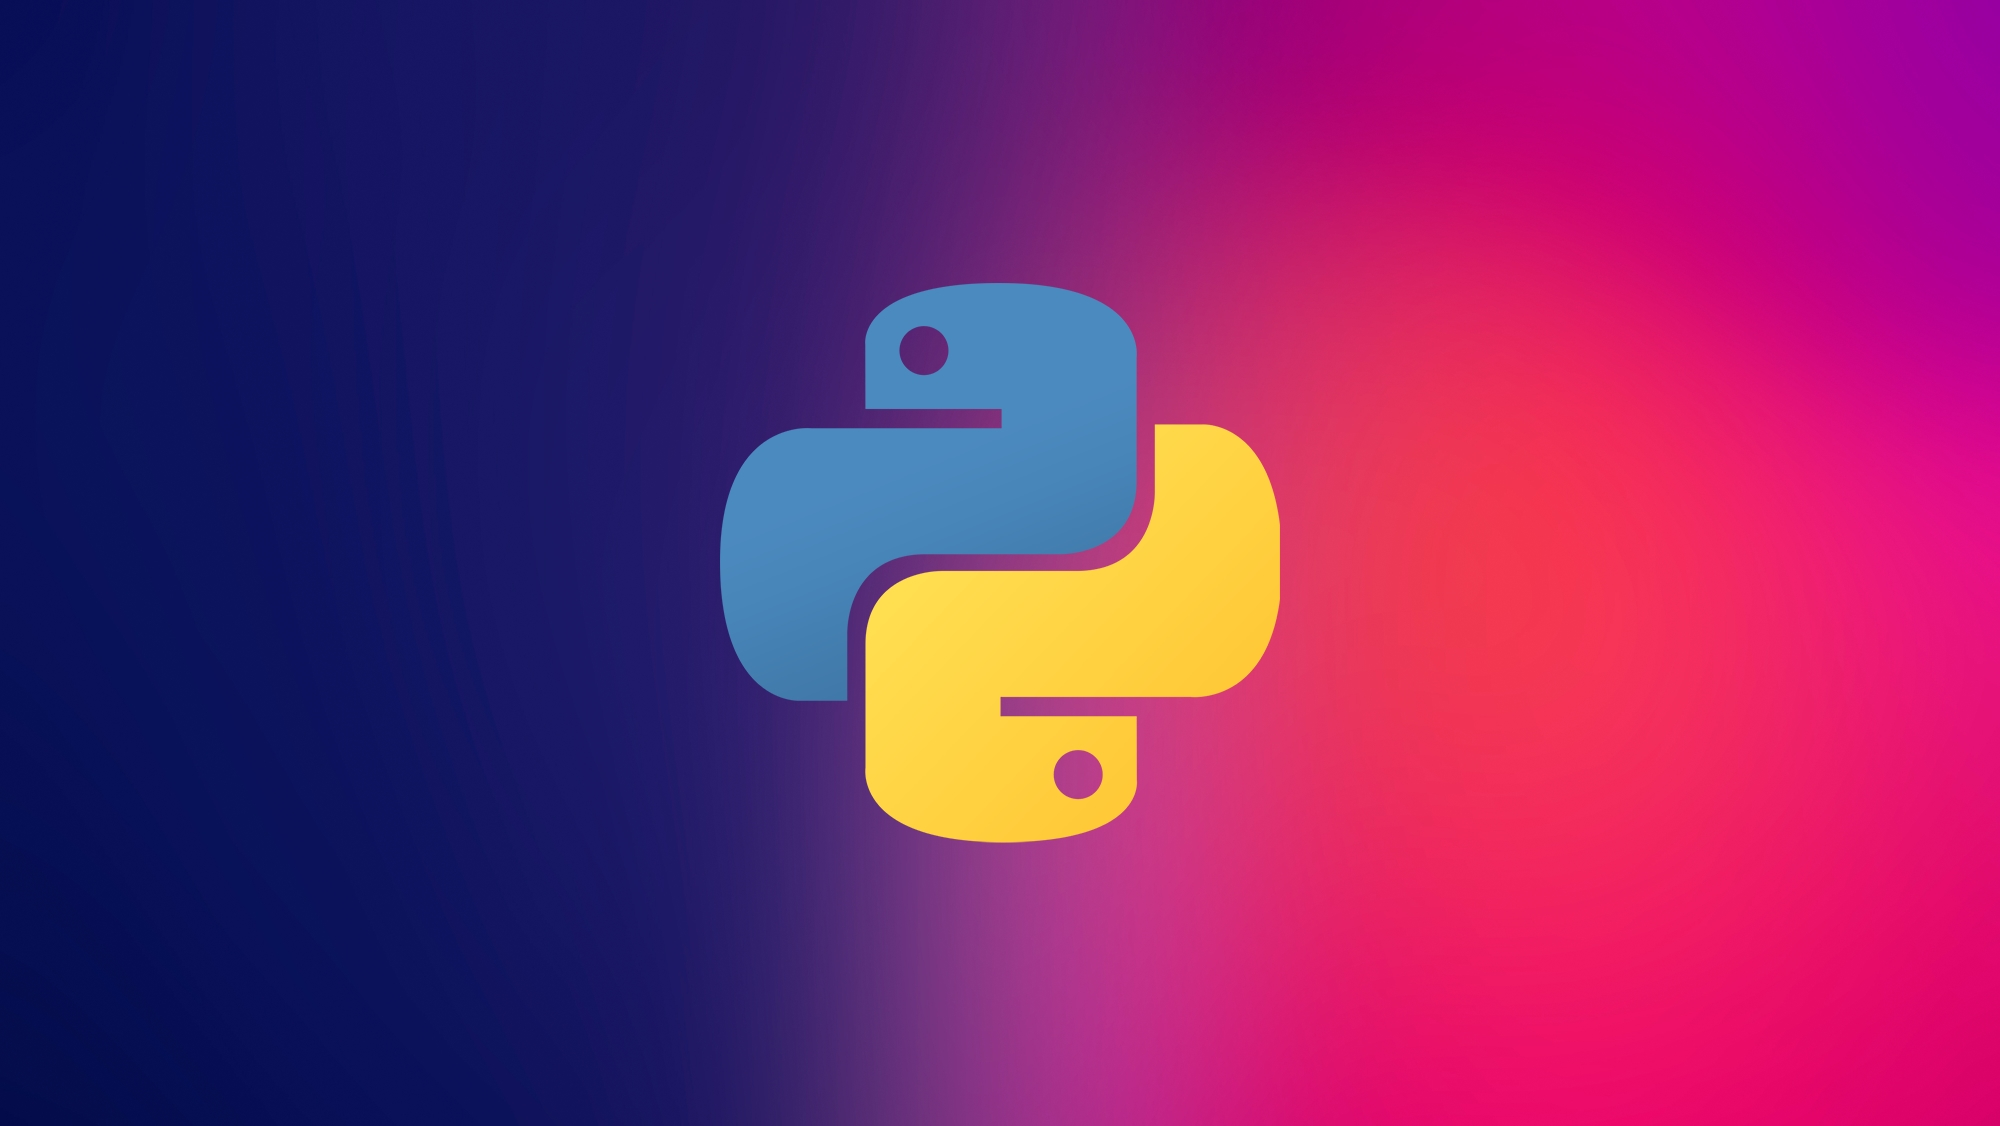 The Complete Python Programming Course for Beginners